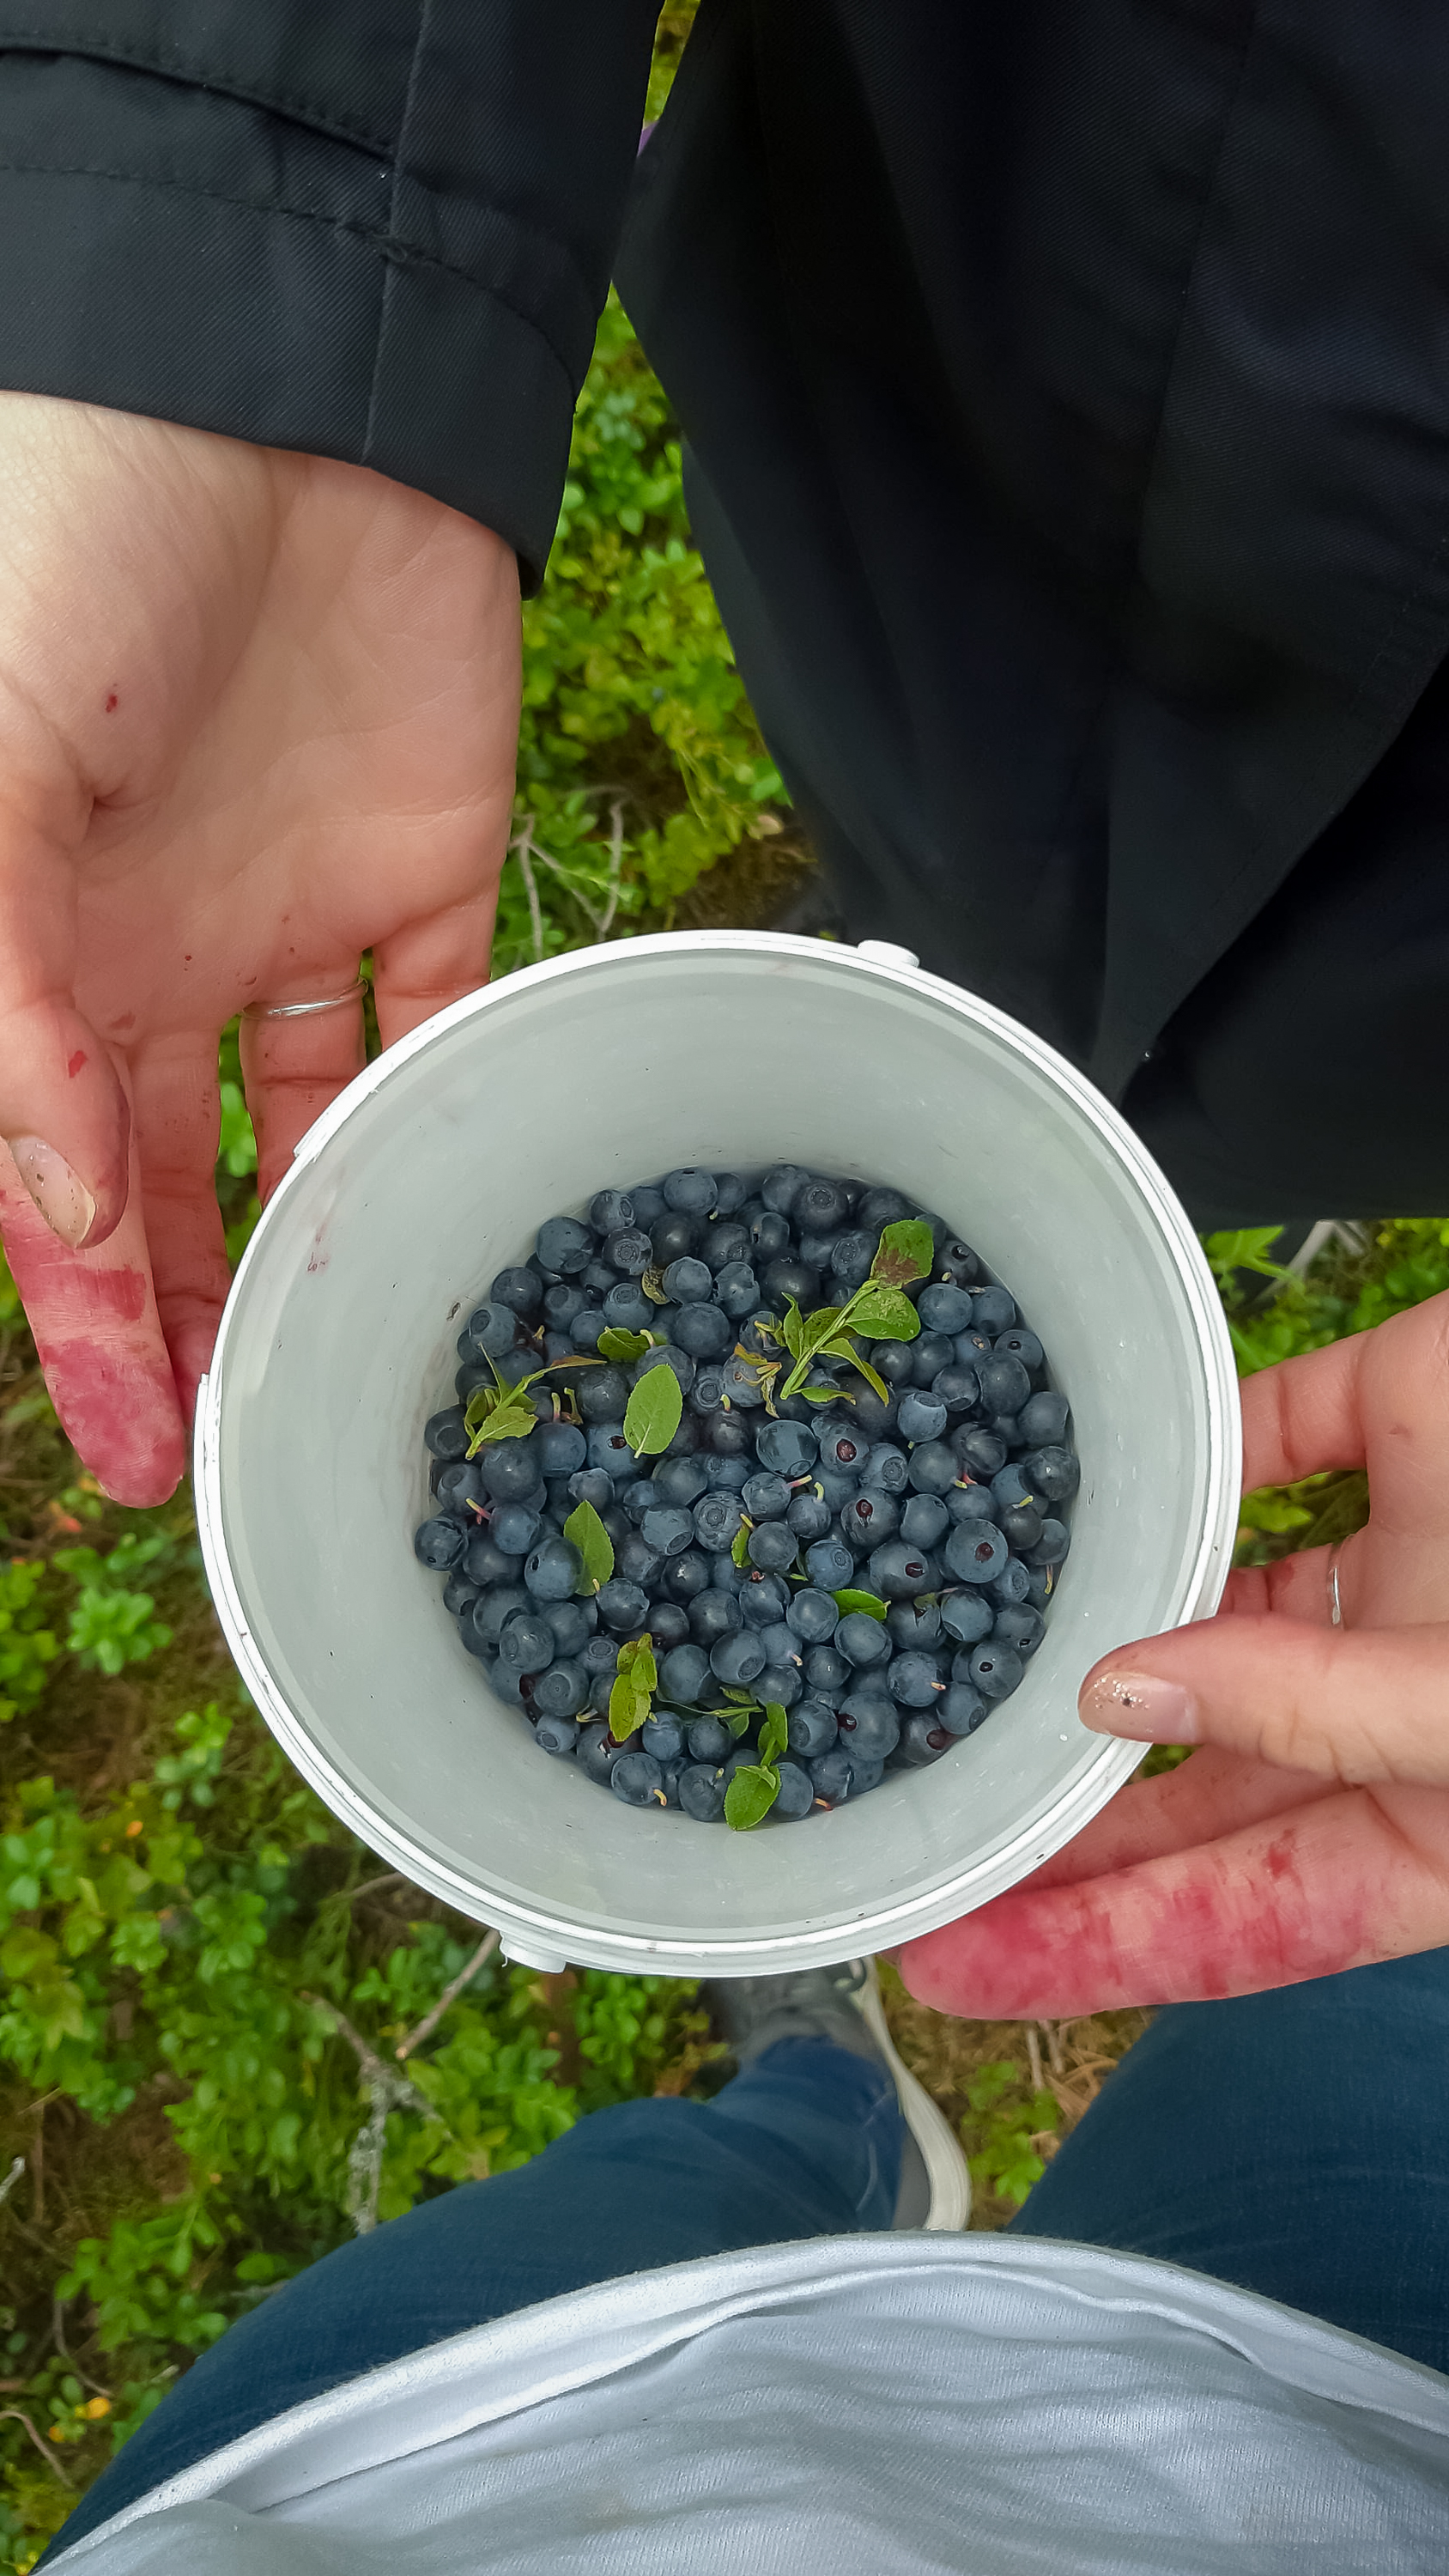 Berry picking from last week